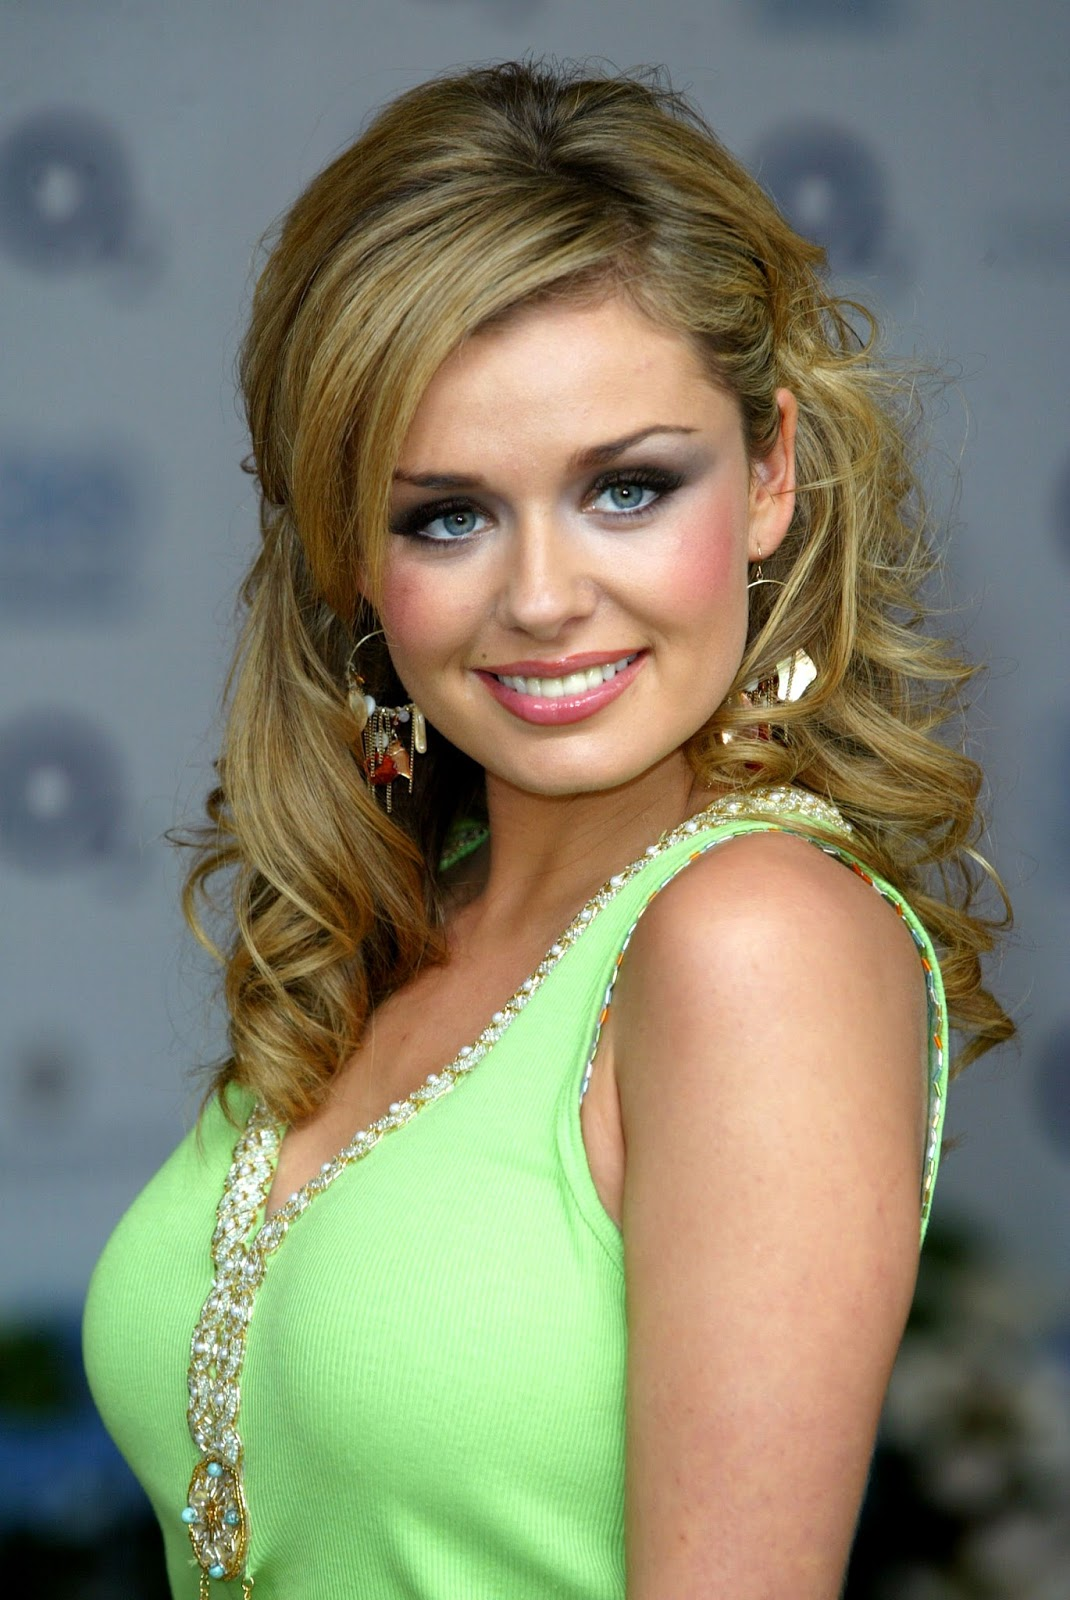 female celebrities welsh singer - photo #40